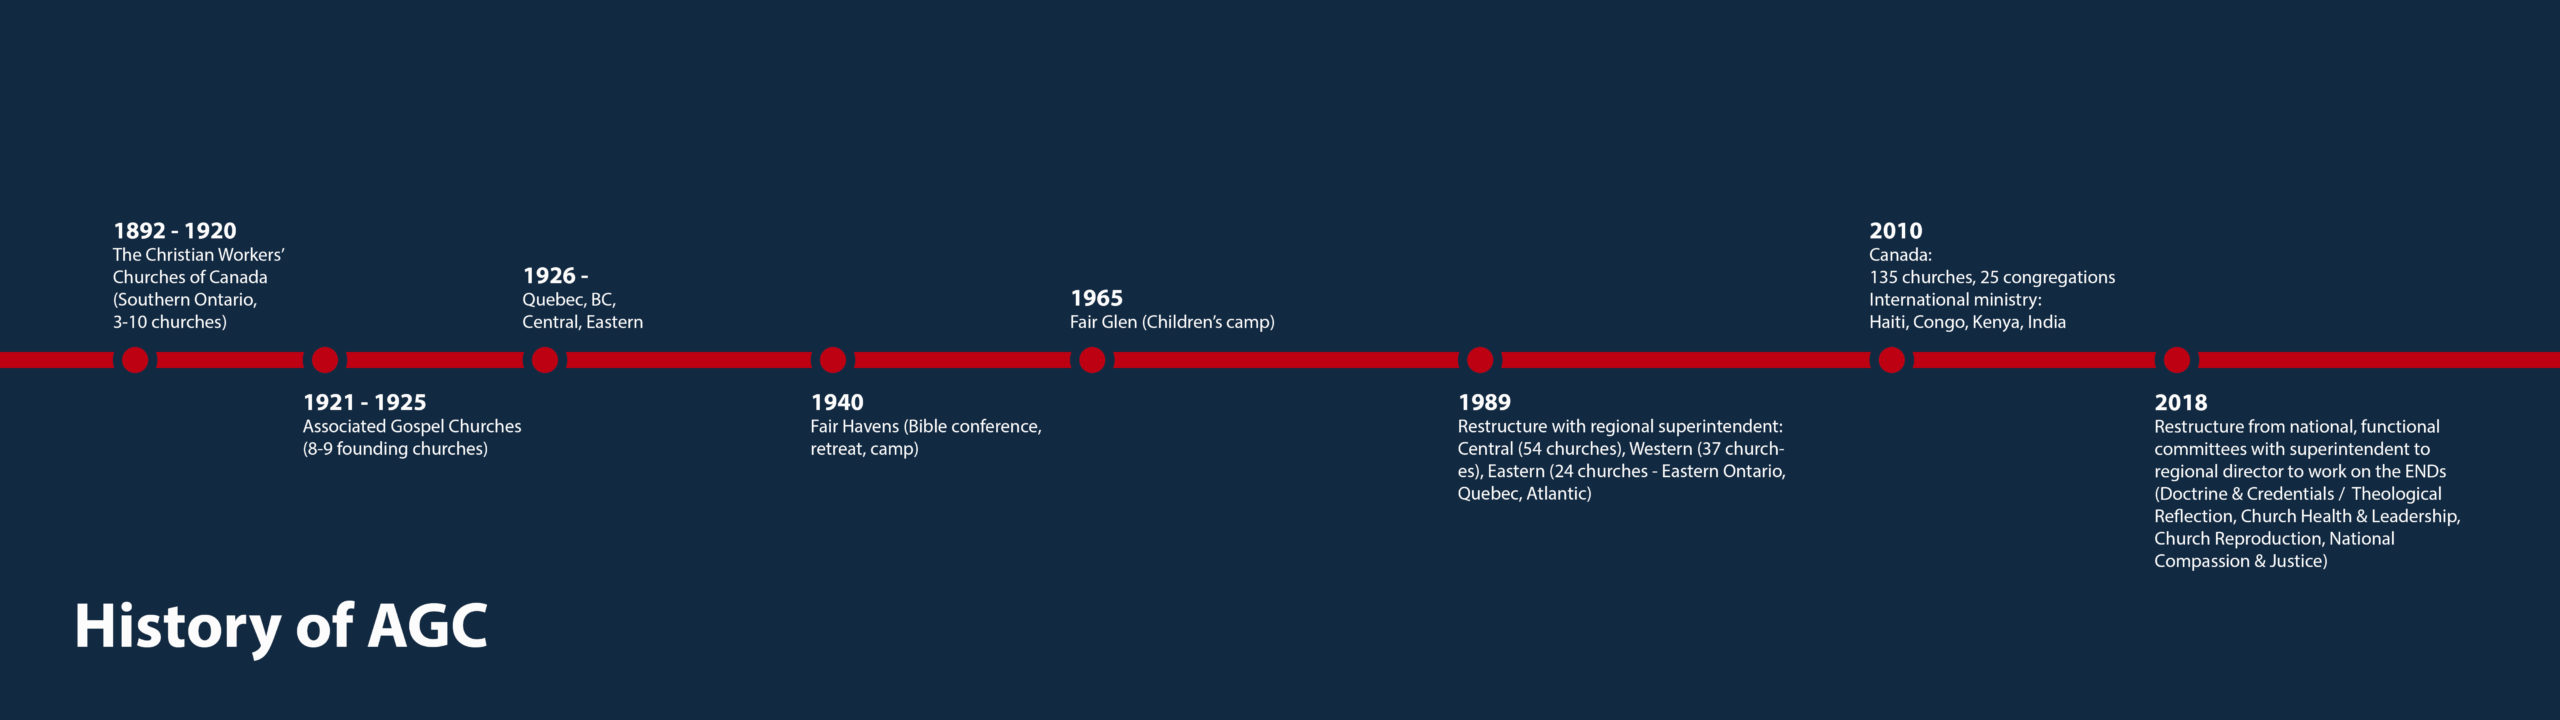 A timeline detailing the history of Associated Gospel Churches